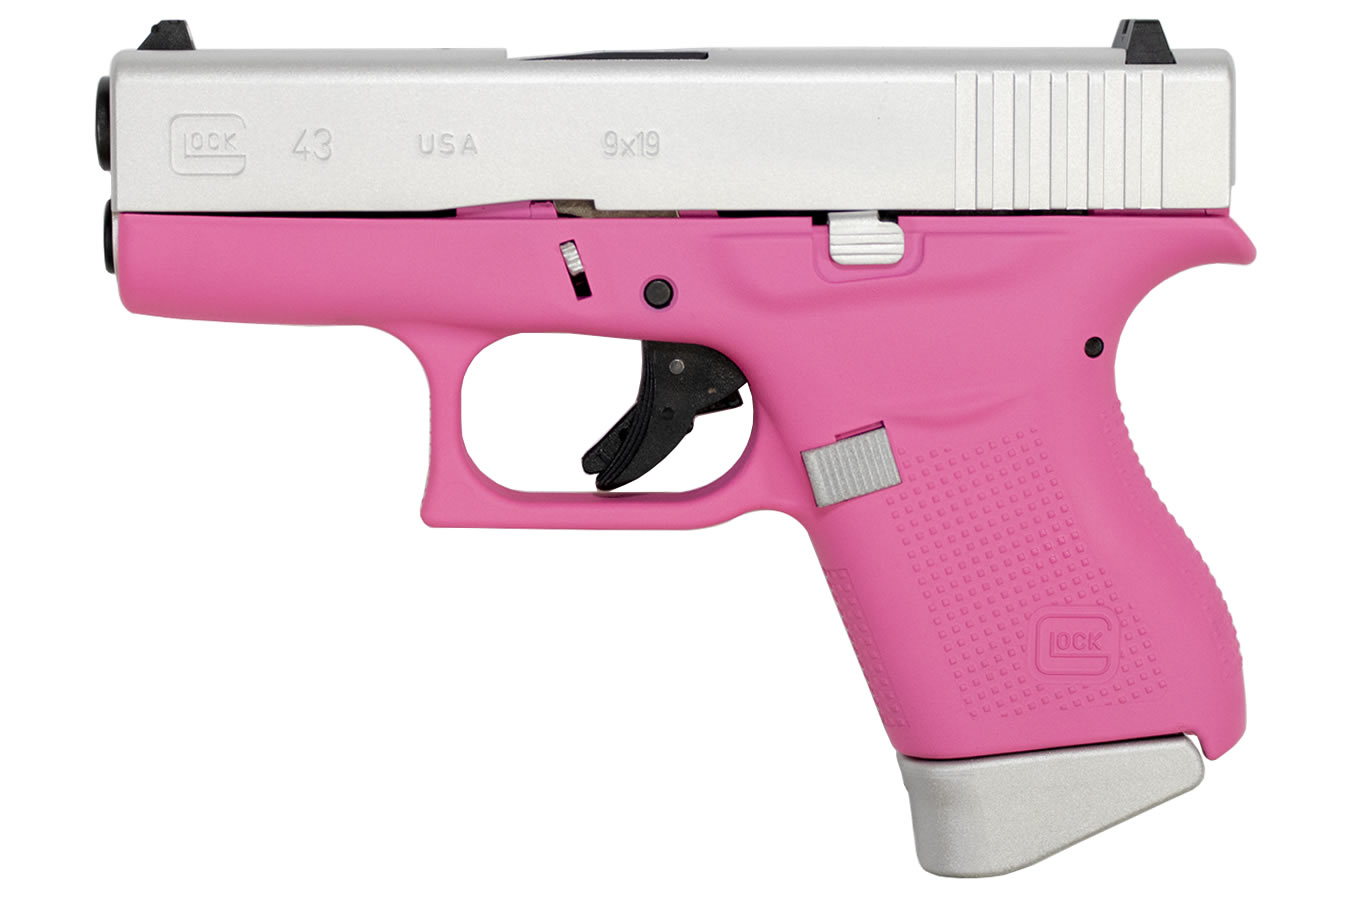 Glock 43 9mm Single Stack Pistol With Cerakote Pink Frame And